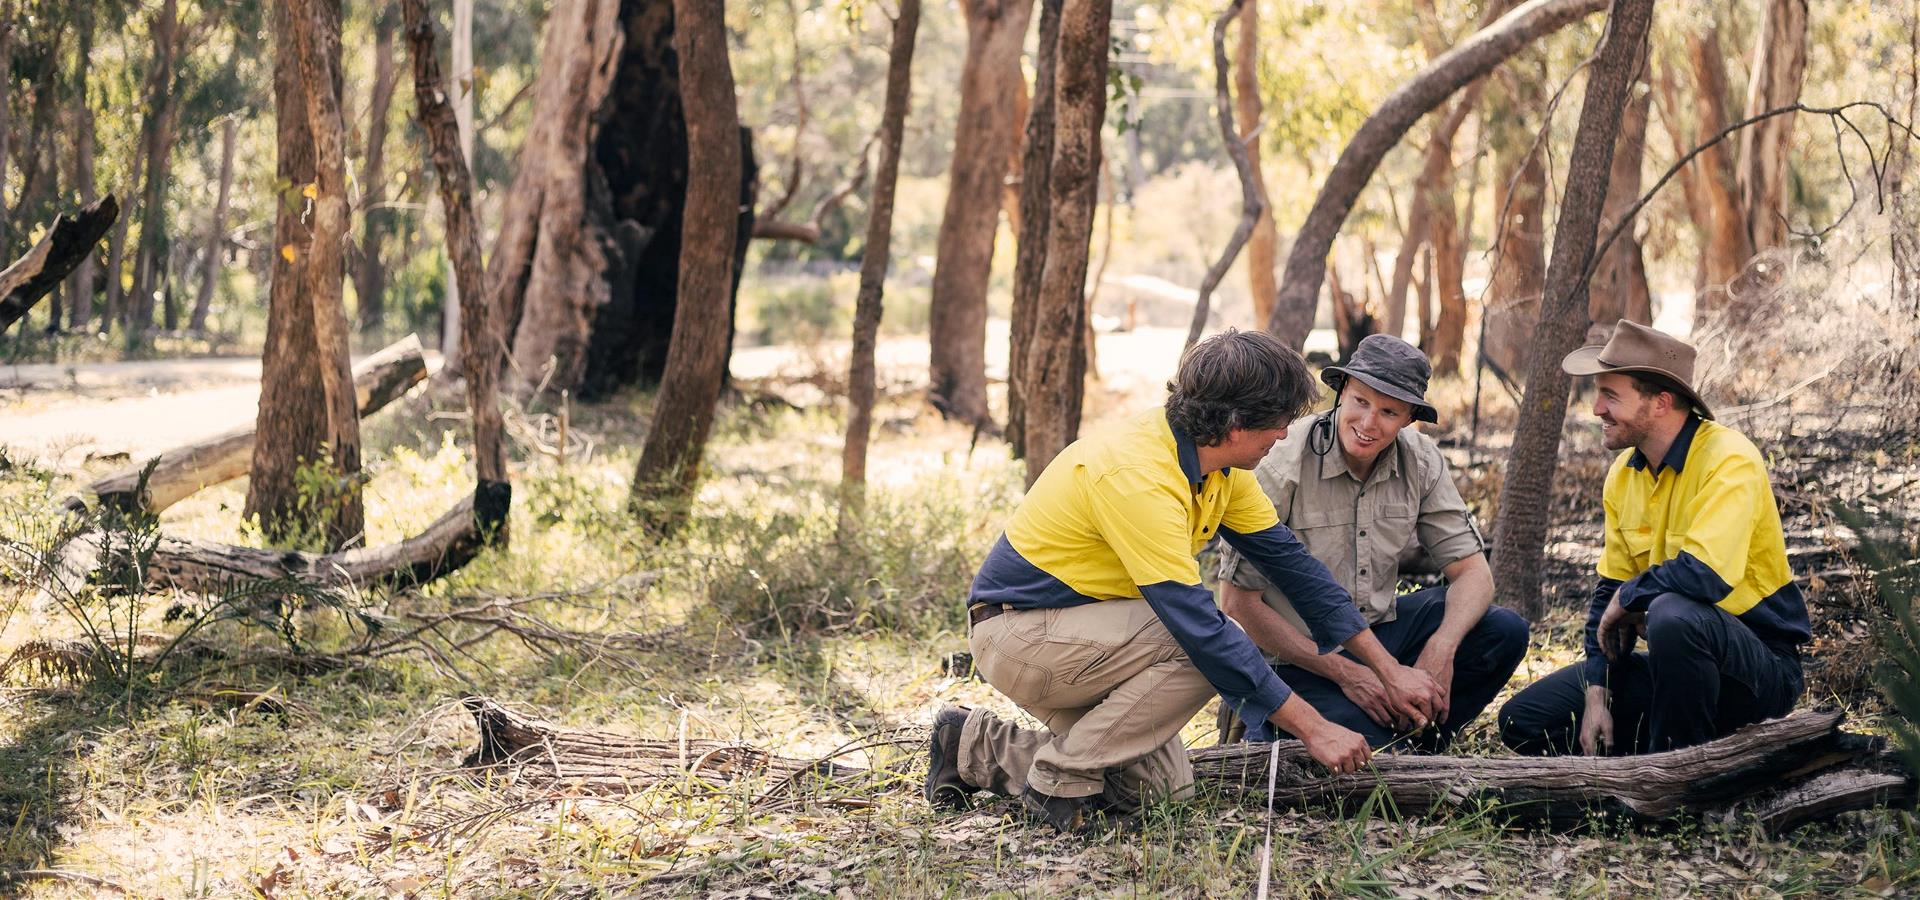 Researchers working together in the bushland